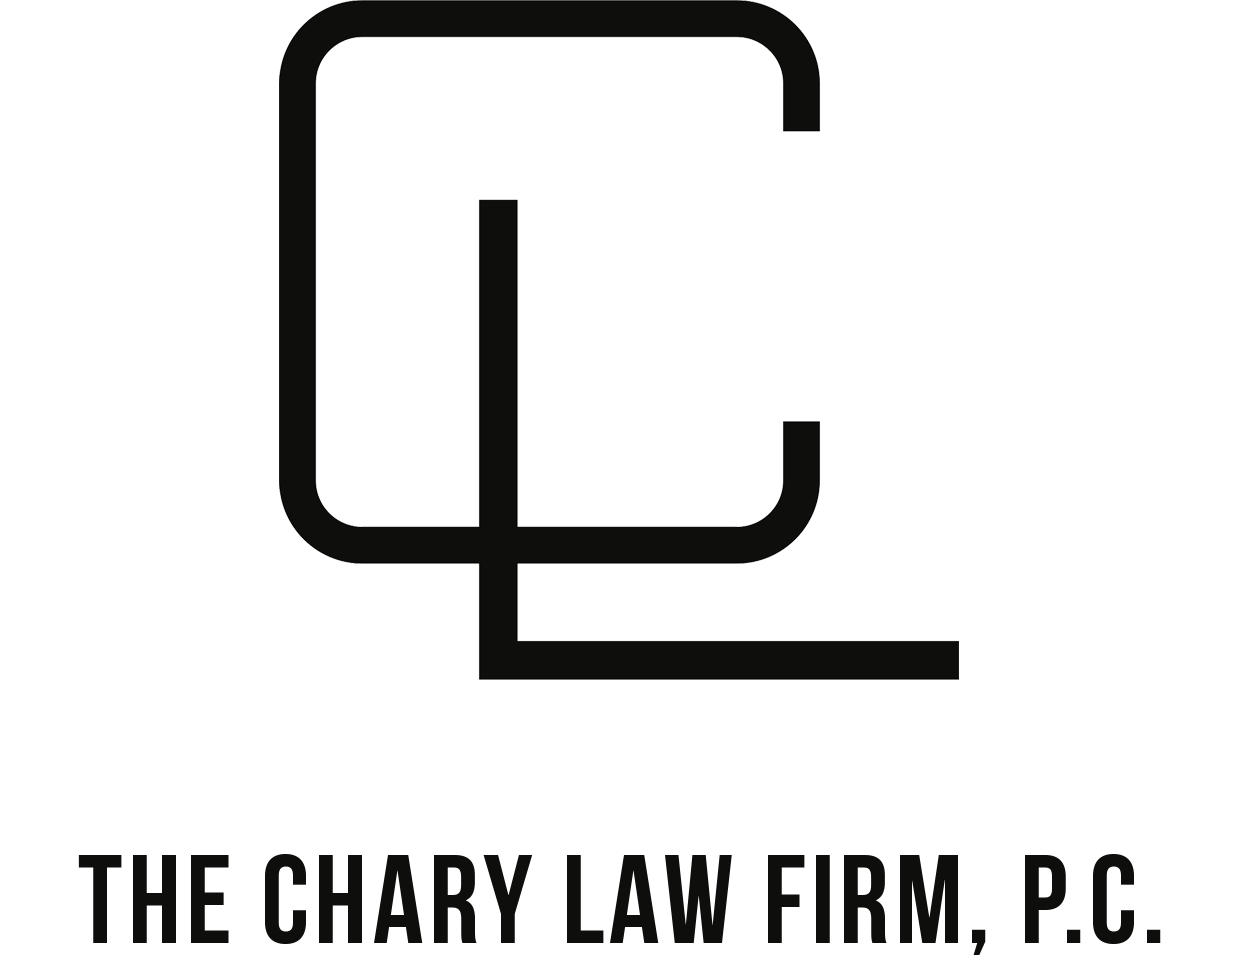 The Chary Law Firm, P.C.